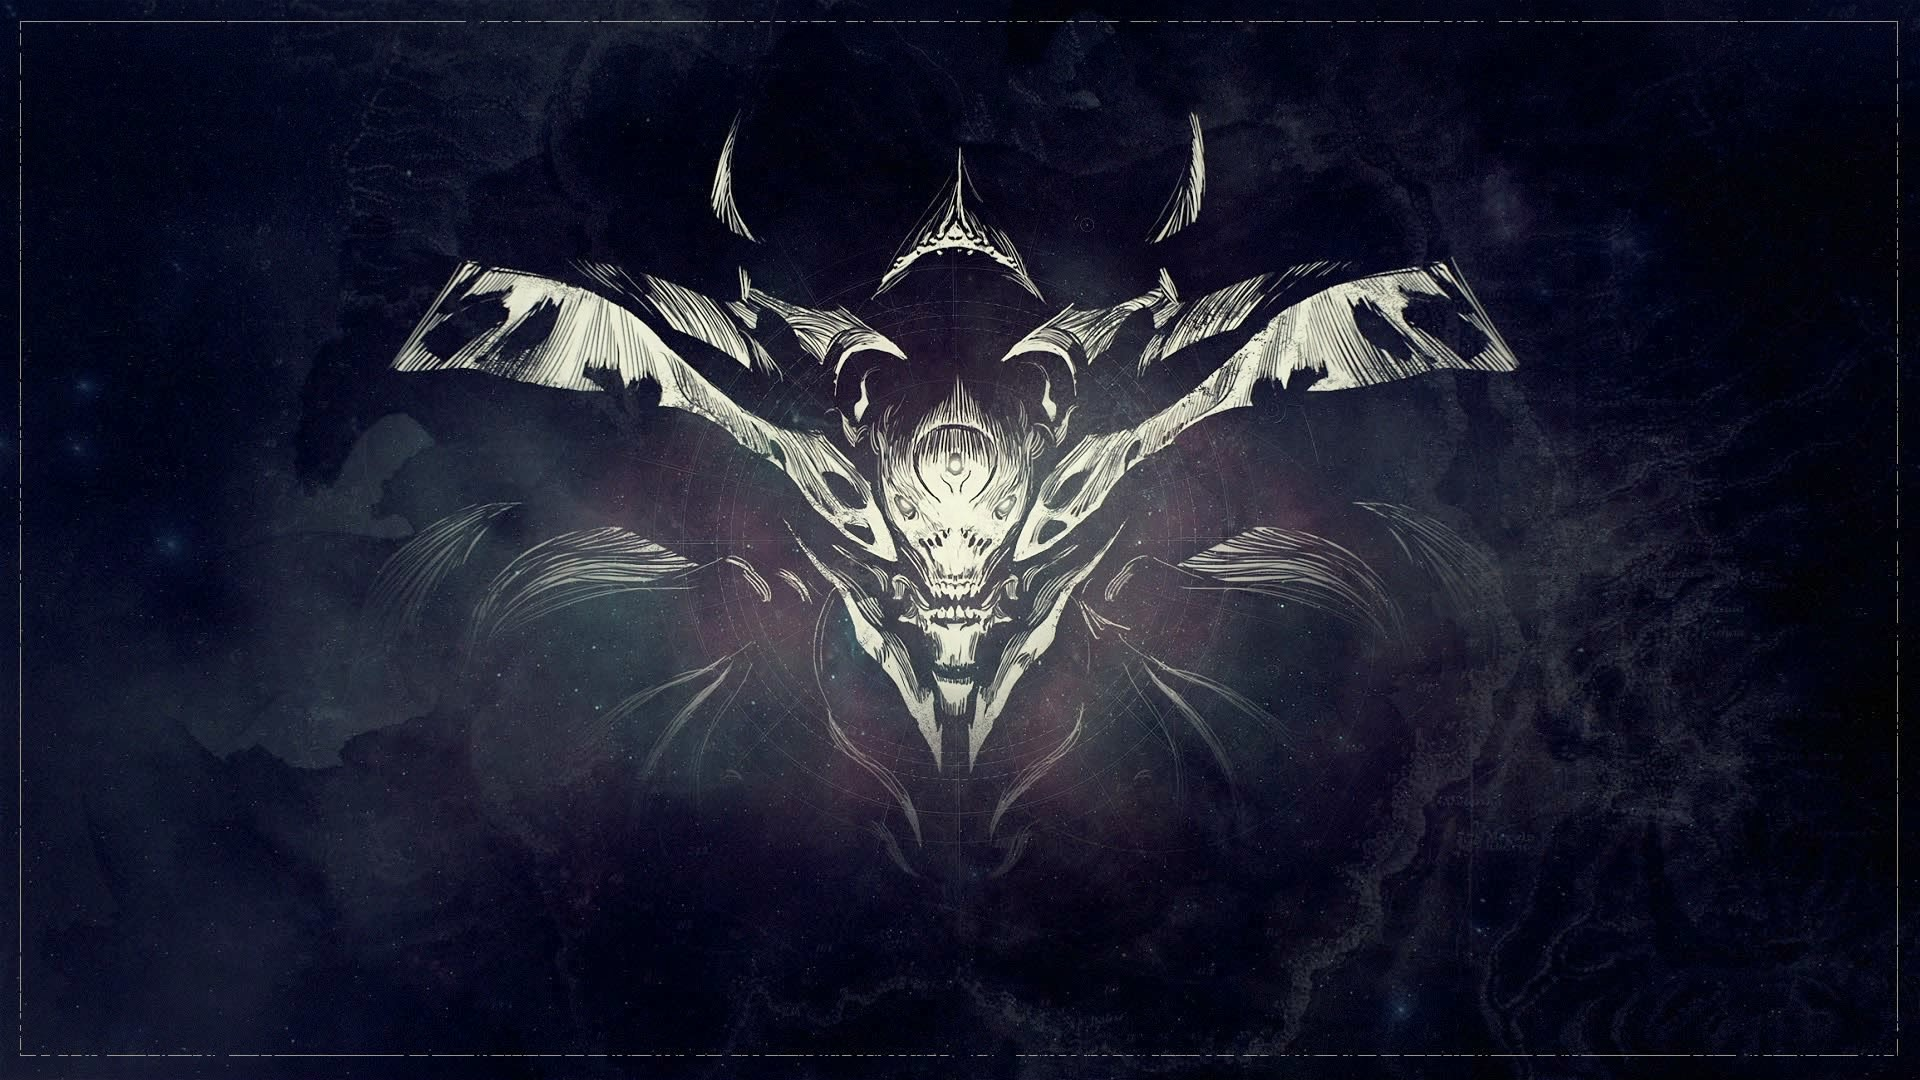 Full HD Destiny The Taken King Wallpapers Full HD Pictures 1920x1080